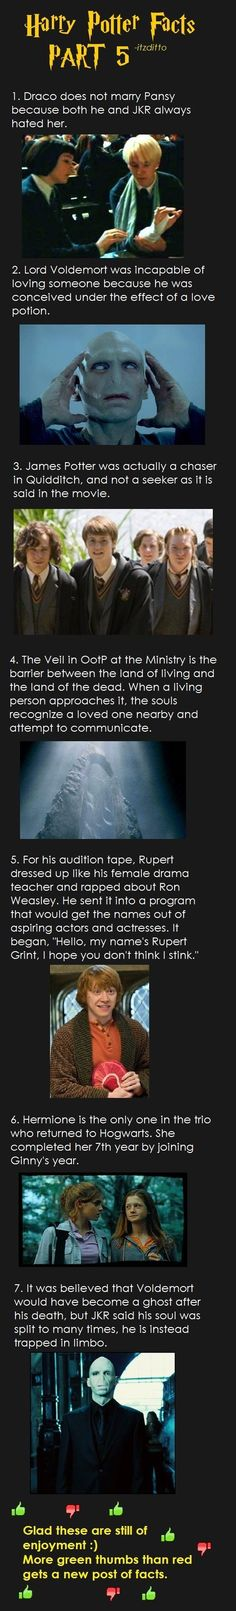 Harry Potter Facts Part 5 - Hogwarts Harry Potter Love, Harry Potter Universal, Harry Potter Fandom, Harry Potter World, Harry Potter Memes, James Potter, Hogwarts, Slytherin, Scorpius And Rose